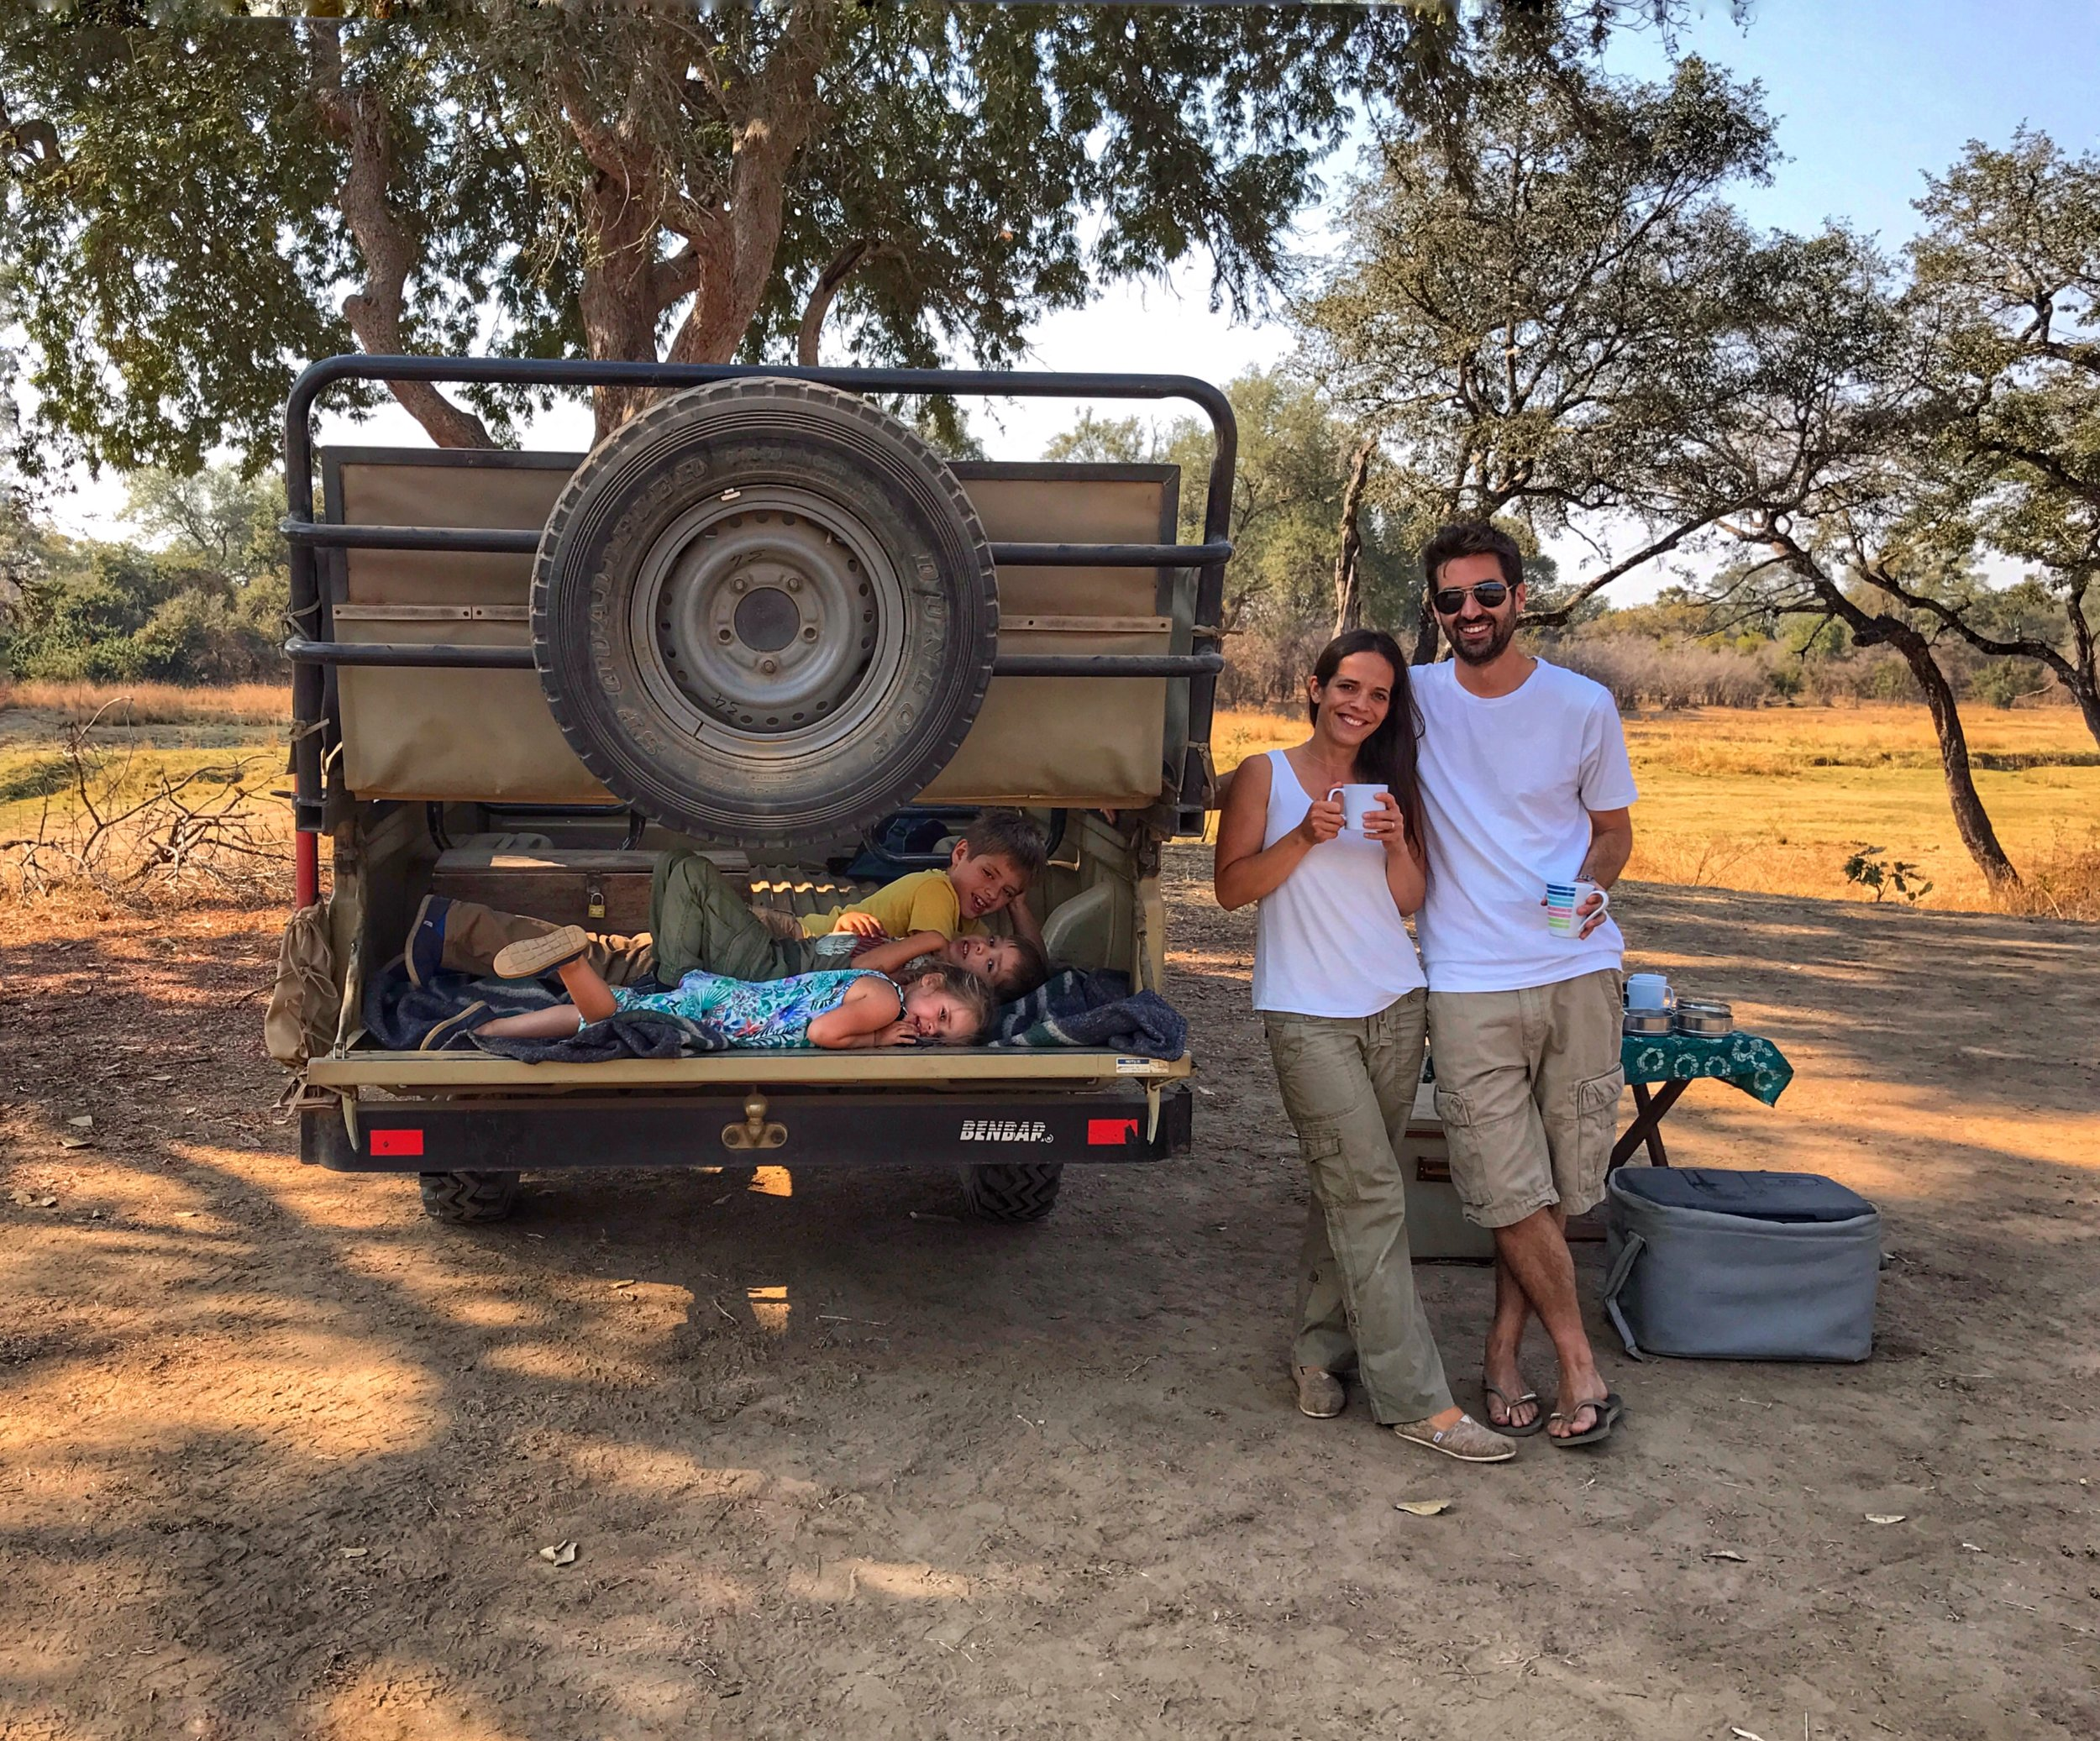 A rest stop during an amazing early morning safari in Zambia